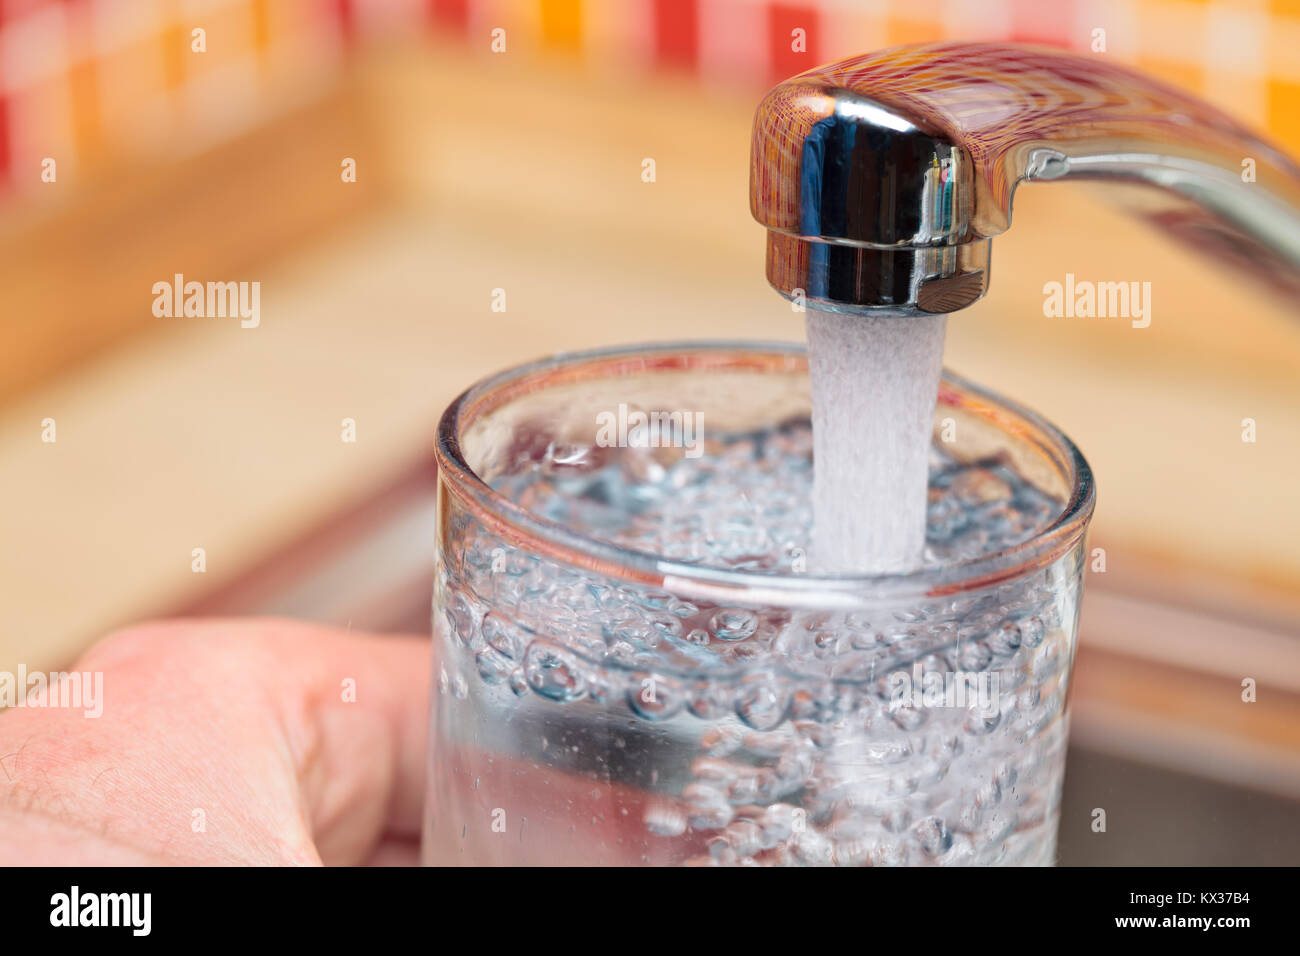 Drinking Unfiltered Water